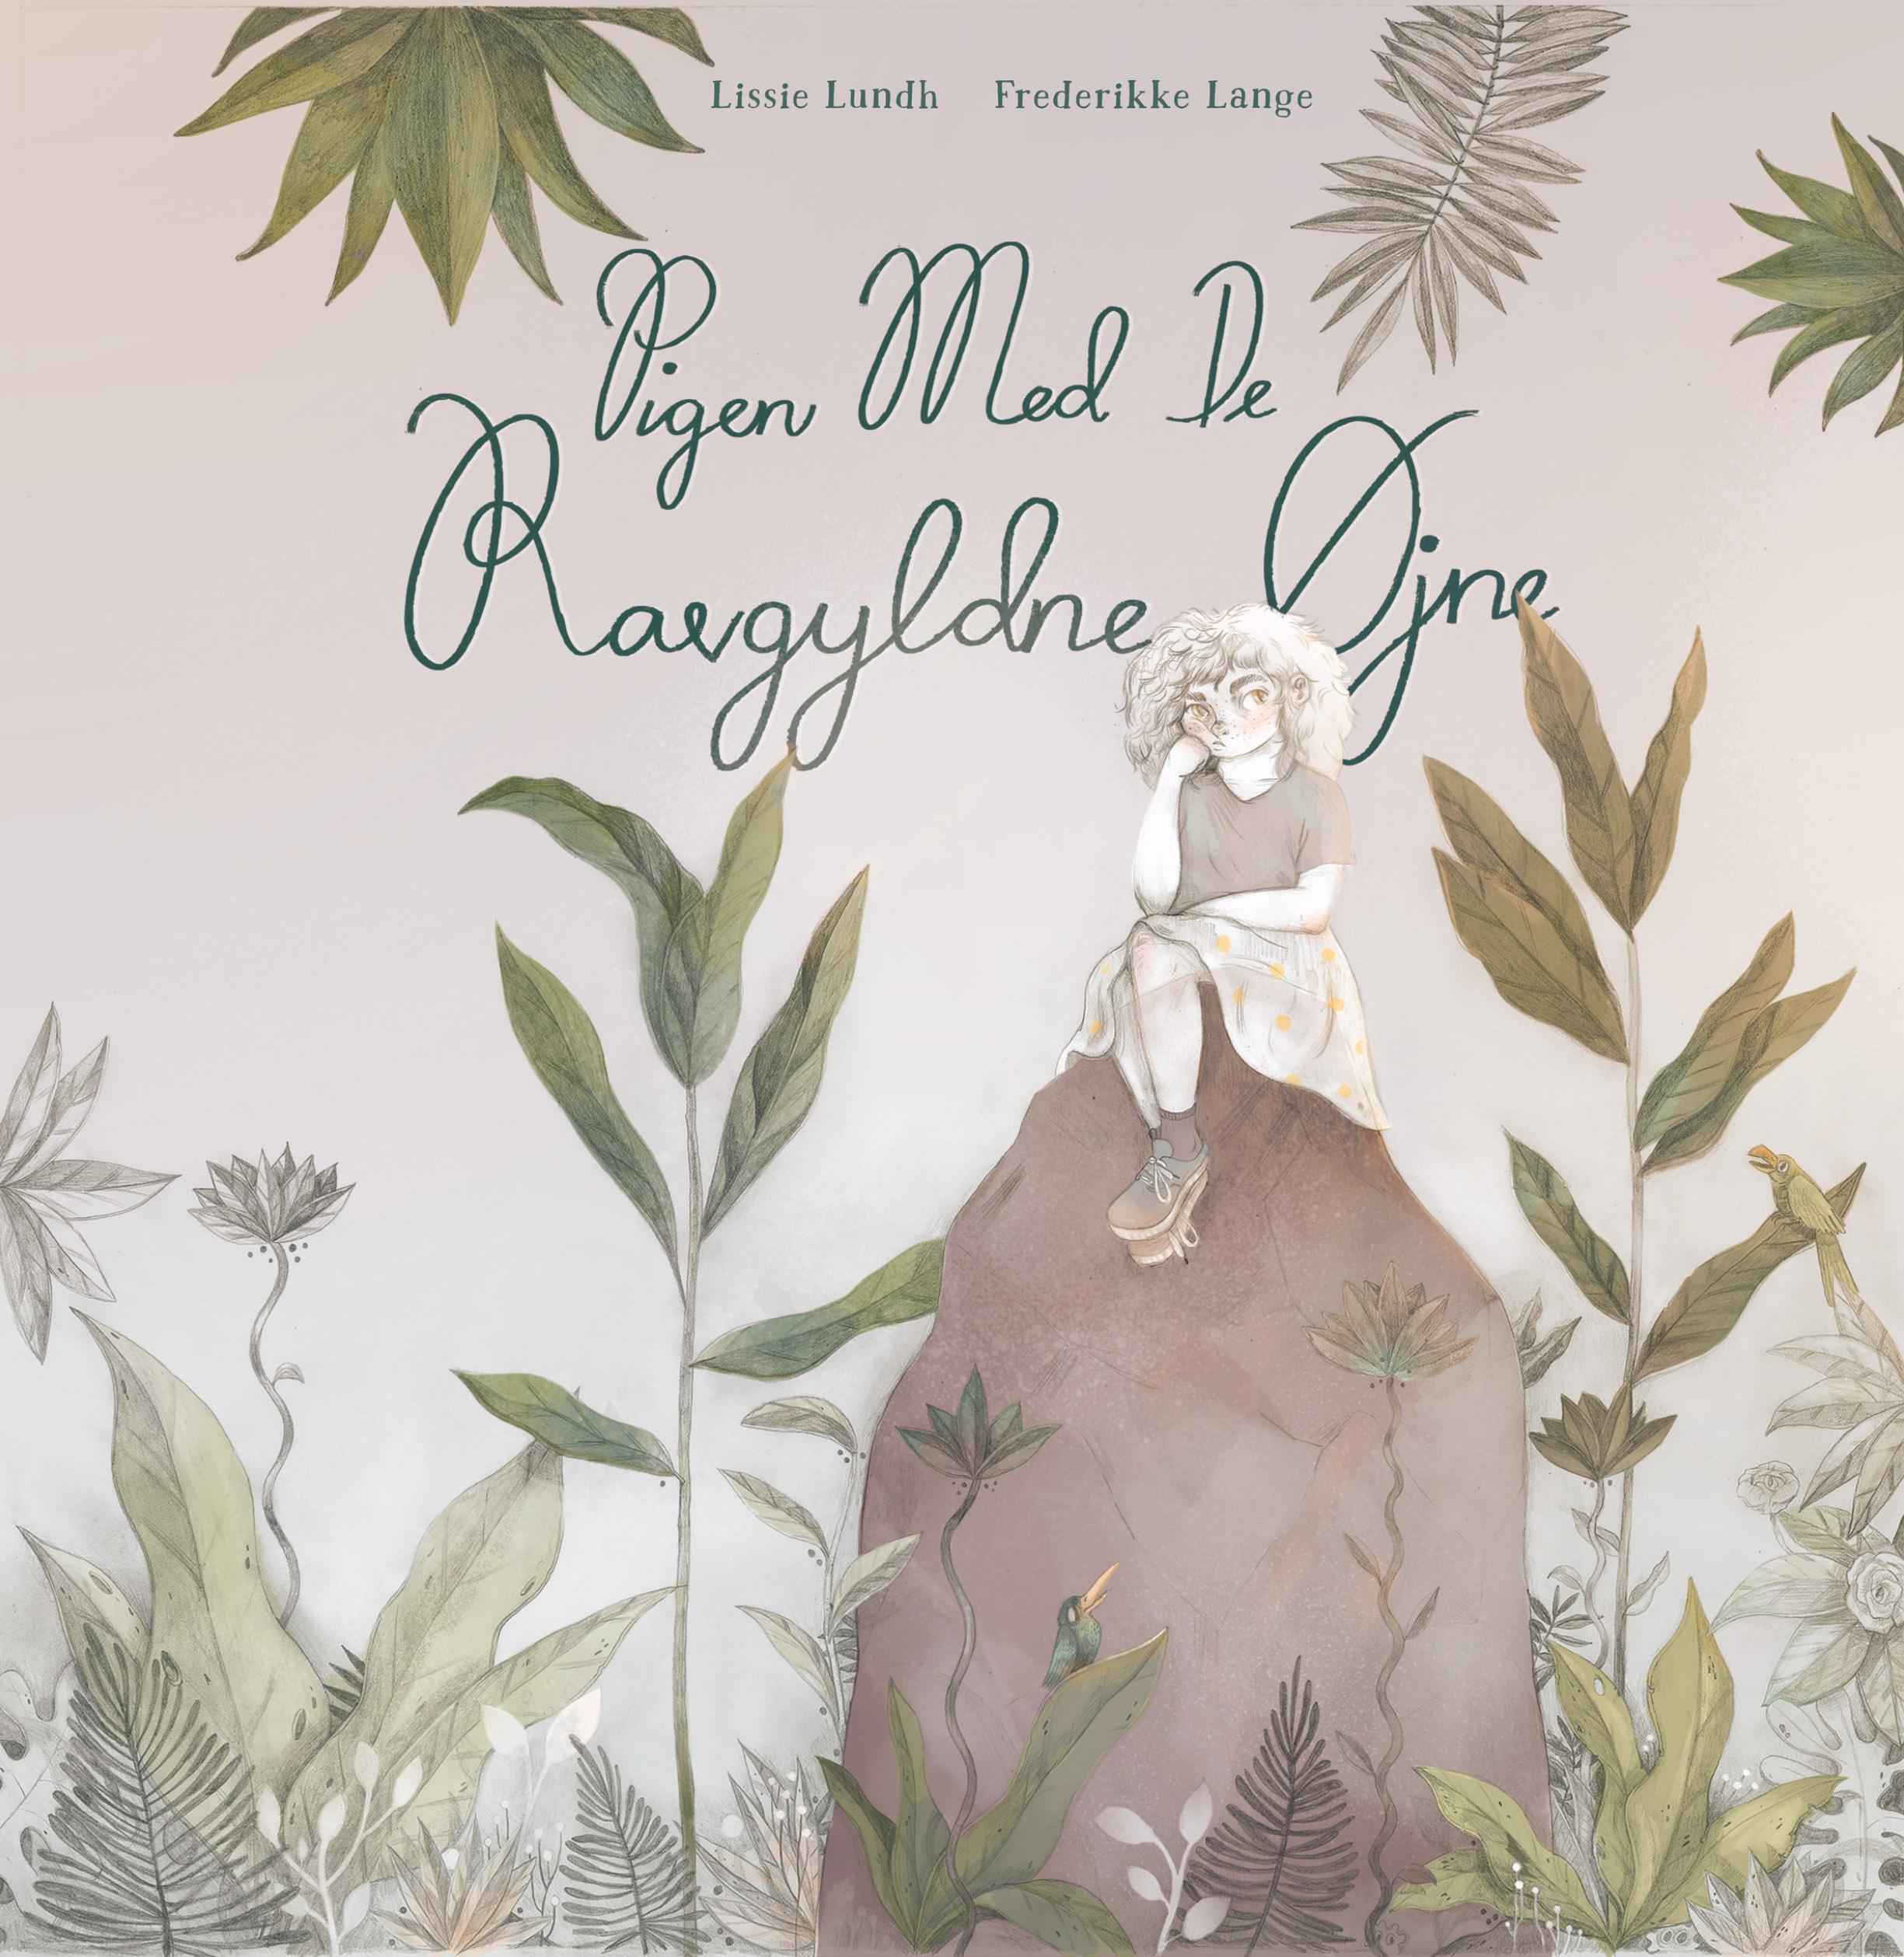 'Pigen med de ravgyldne øjne', cover from 'The girl with amber eyes'illustrated by Frederikke Lange and written by Lissie Lundh.